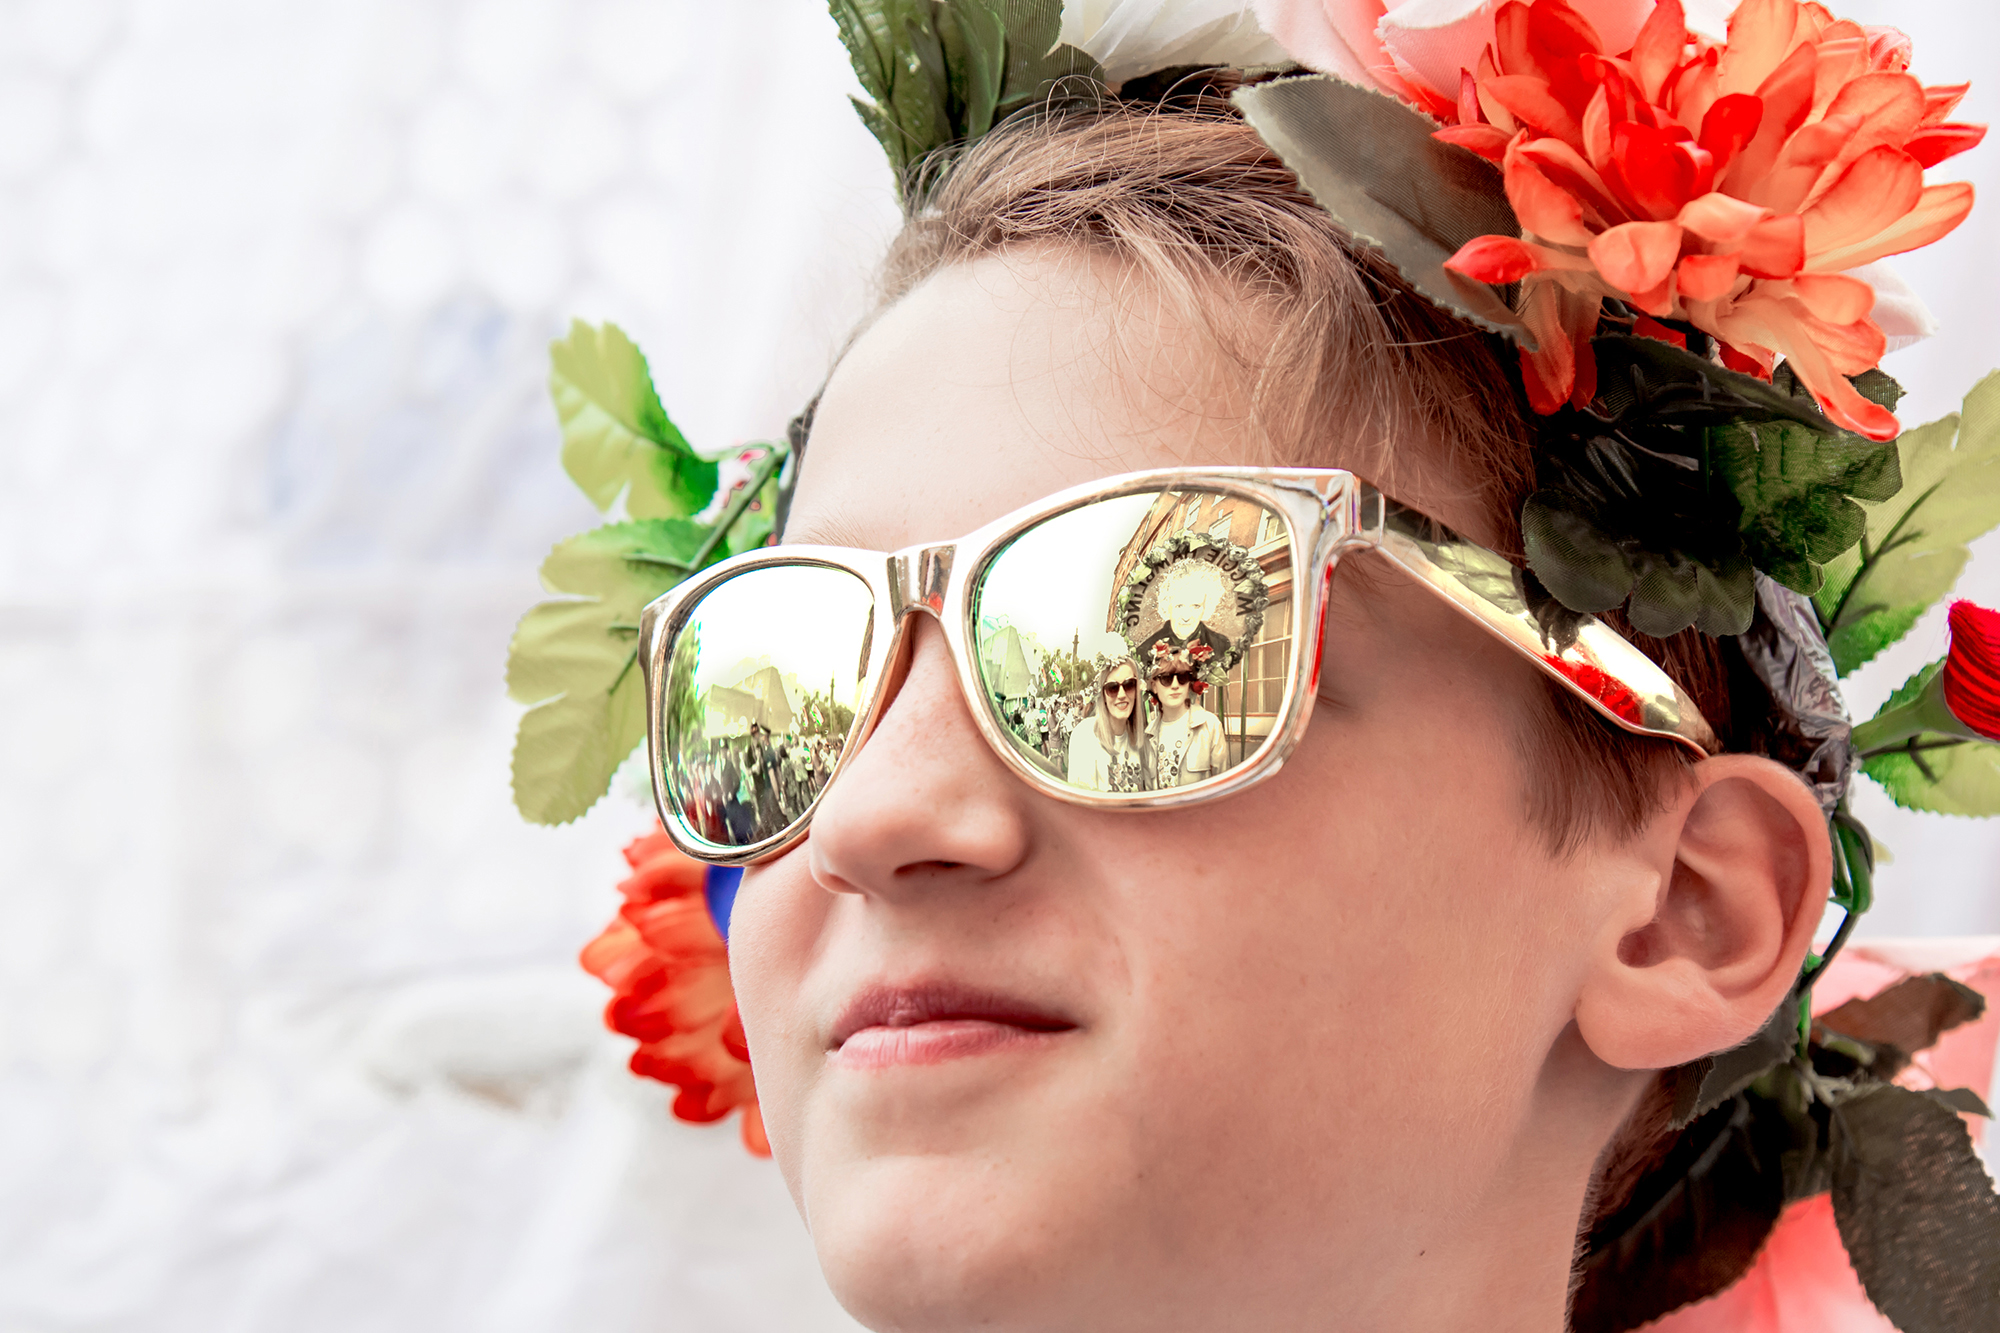 Young person with glasses